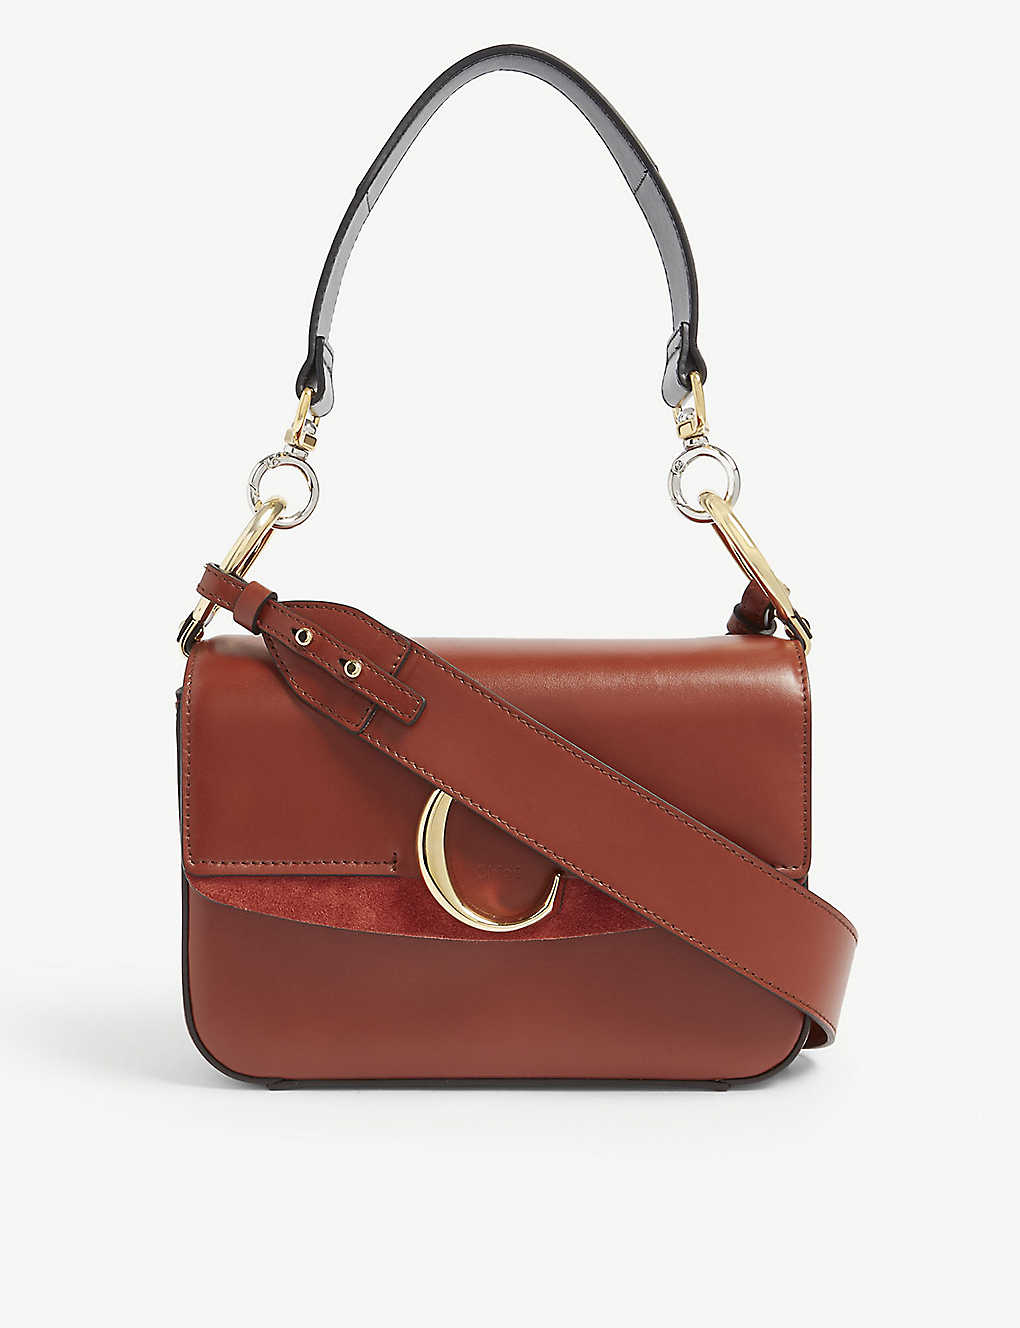 56eacd412547 CHLOE - C small leather shoulder bag